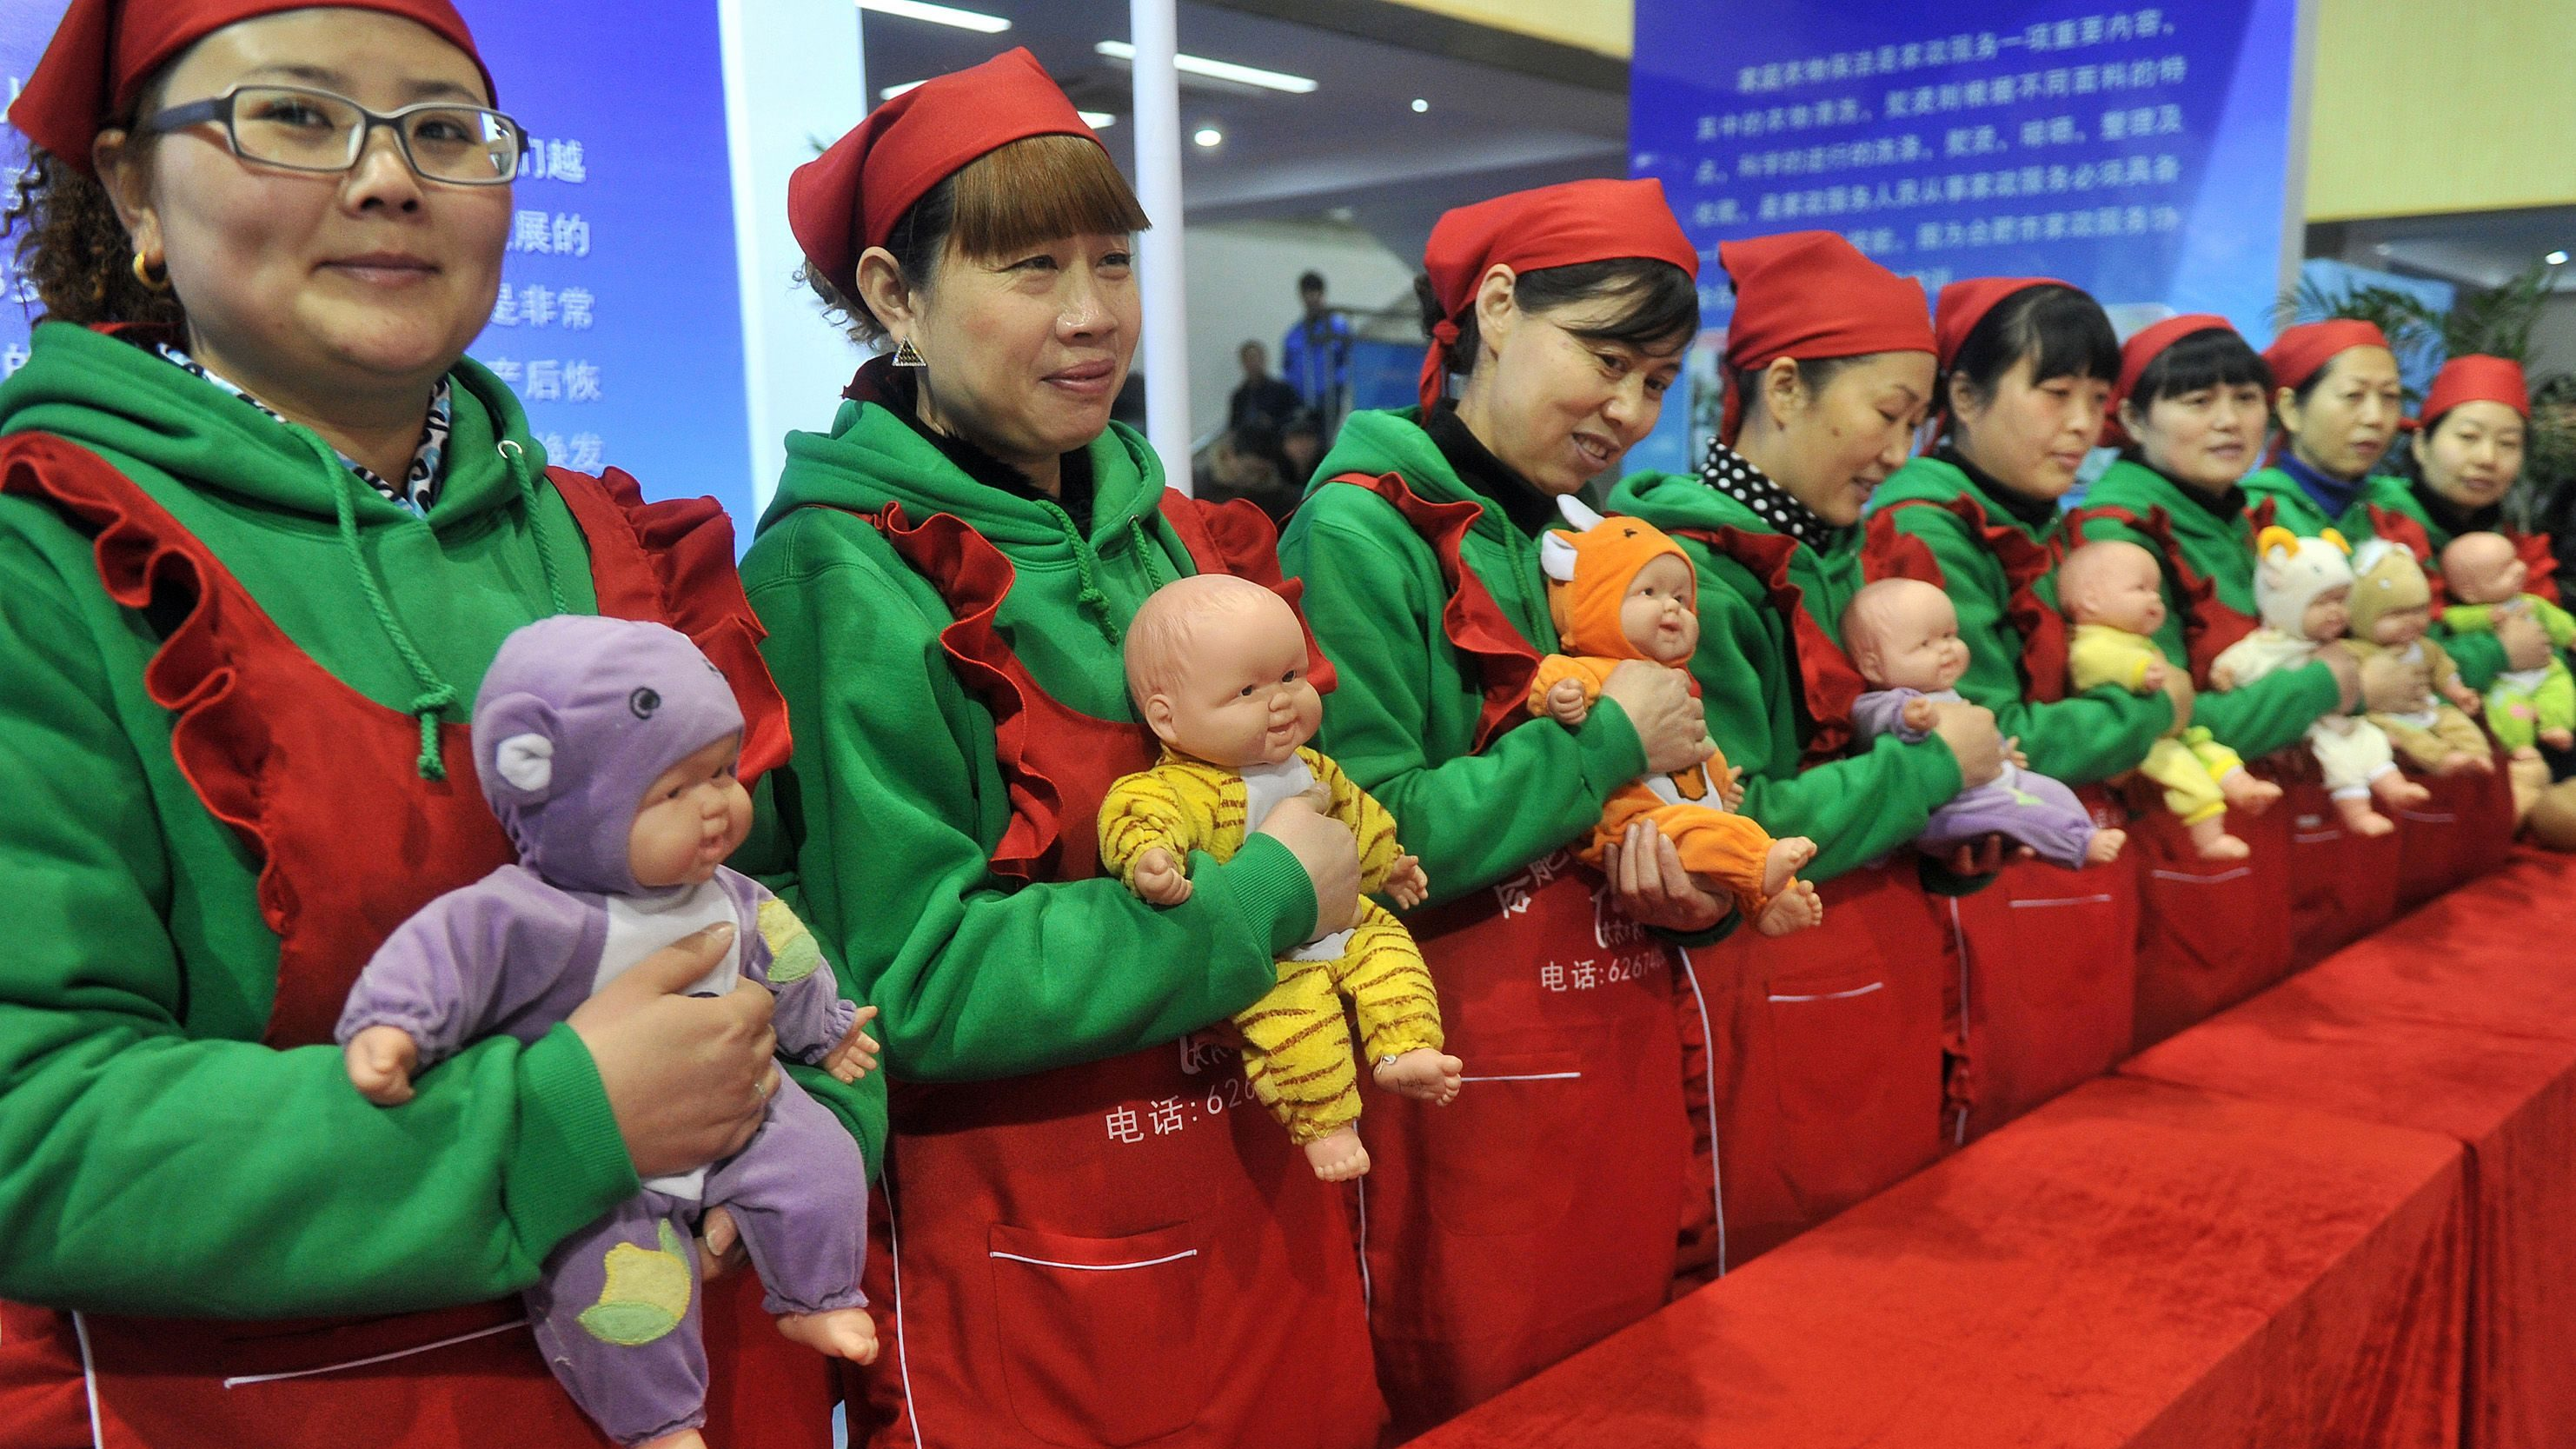 Maternity matrons demonstrate how to take care of babies during a skilled worker festival in Hefei, Anhui province, January 16, 2015. More than one hundred workers with various professions performed during the event, according to local media. REUTERS/Stringer (CHINA - Tags: SOCIETY) CHINA OUT. NO COMMERCIAL OR EDITORIAL SALES IN CHINA - GM1EB1G10LF01